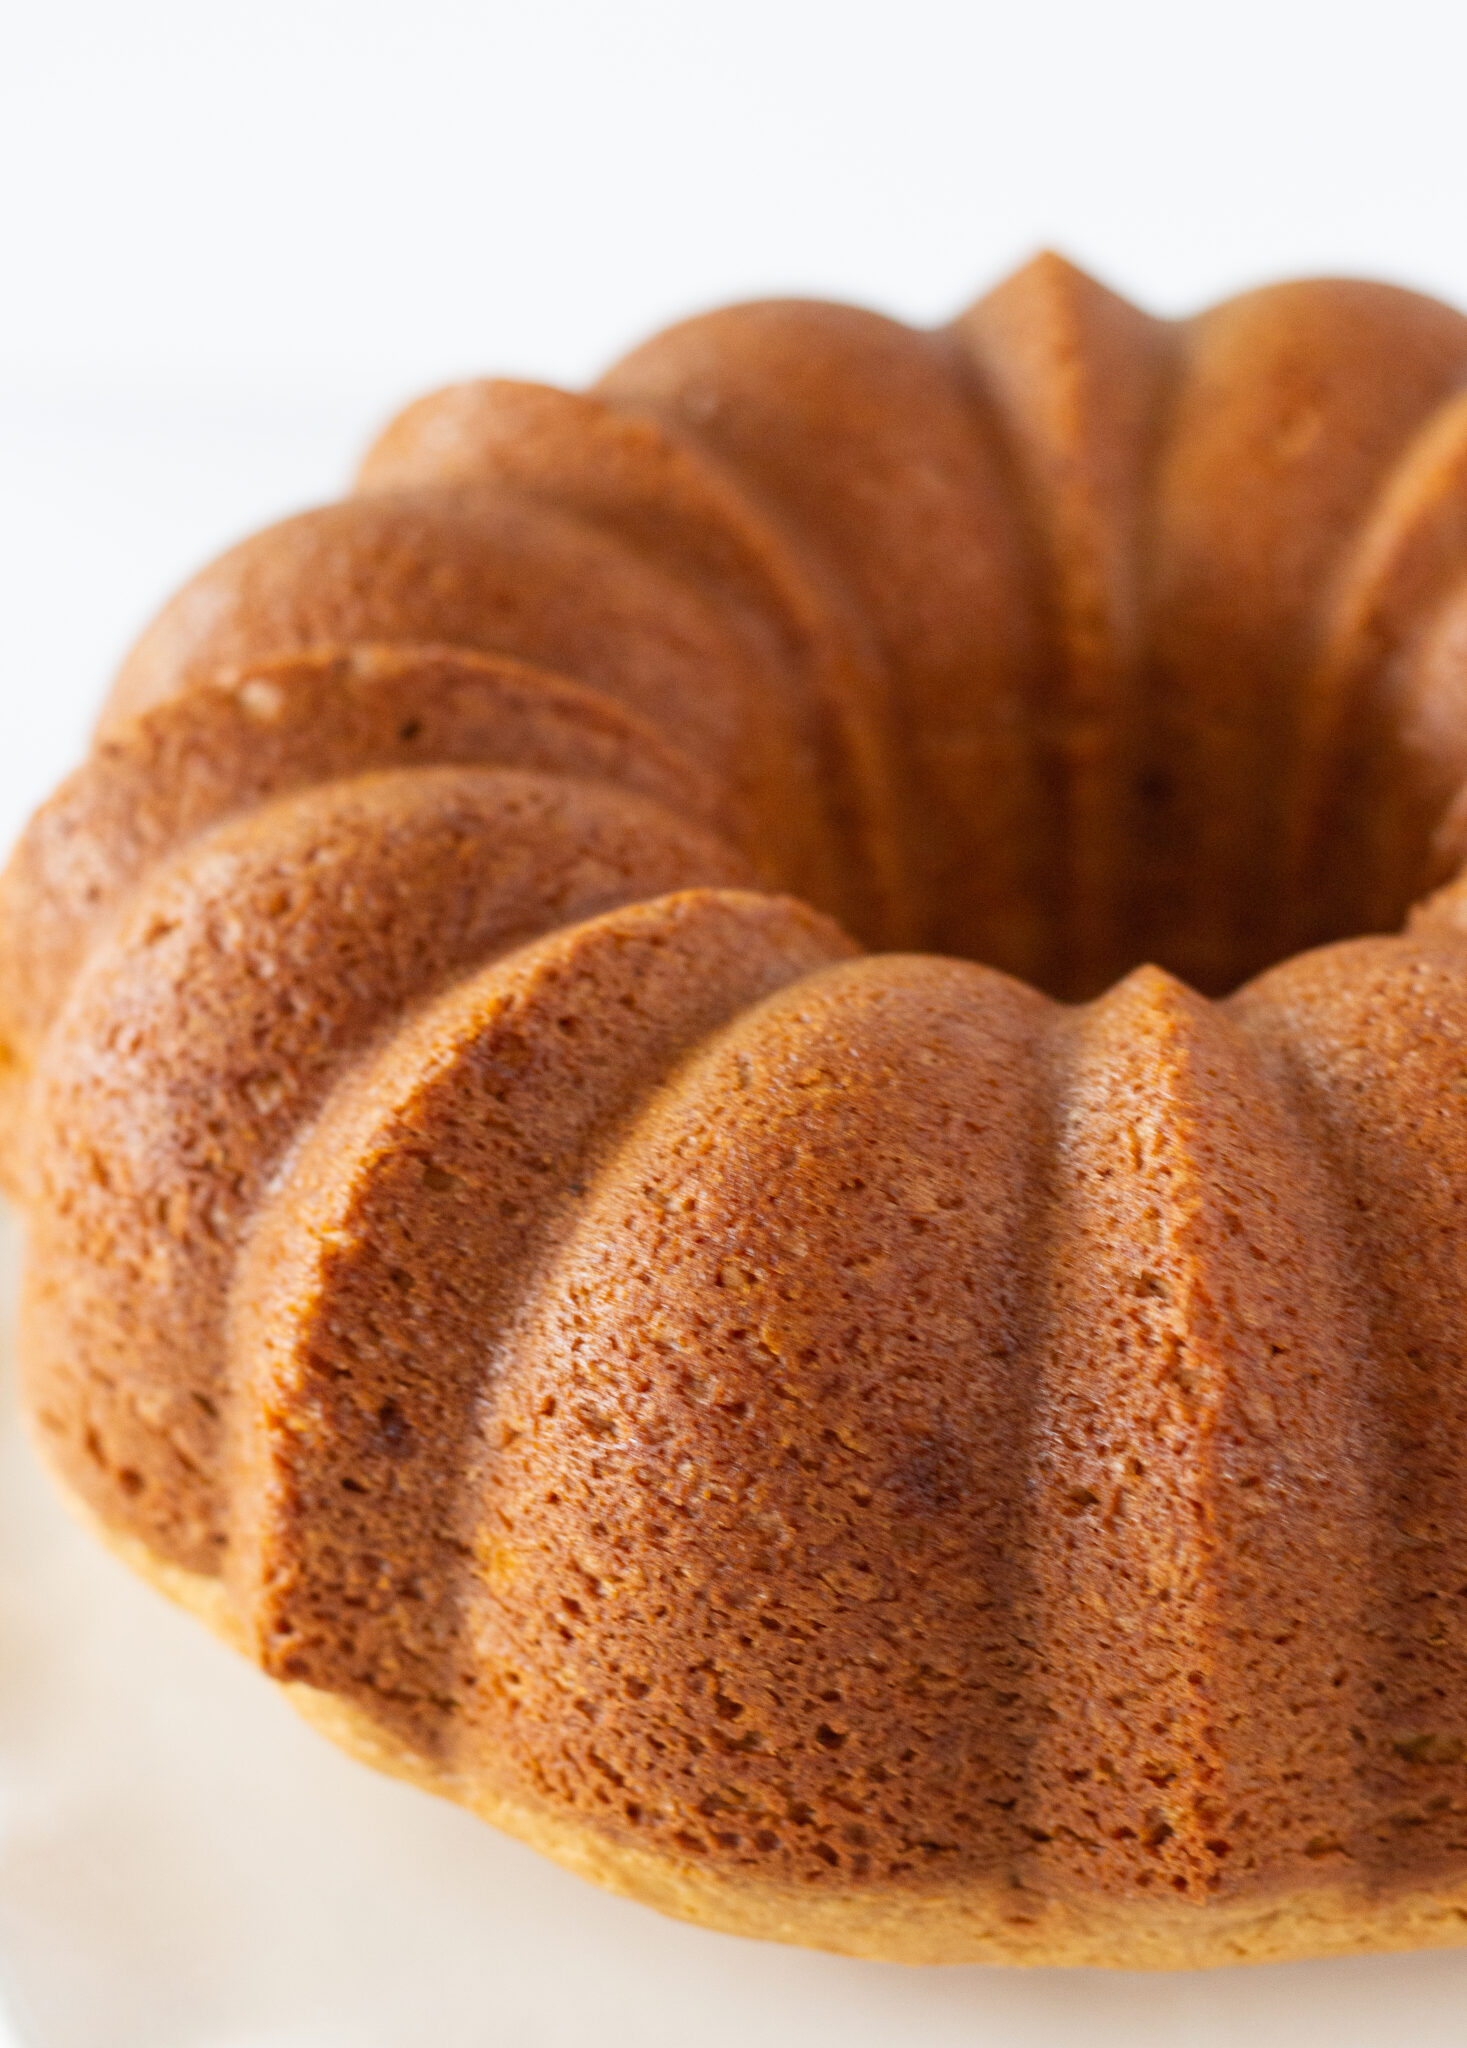 Peanut Butter Texas Sheet Cake Bundt Cake Recipe Made with a Cake Mix by top US dessert blogger, Practically Homemade